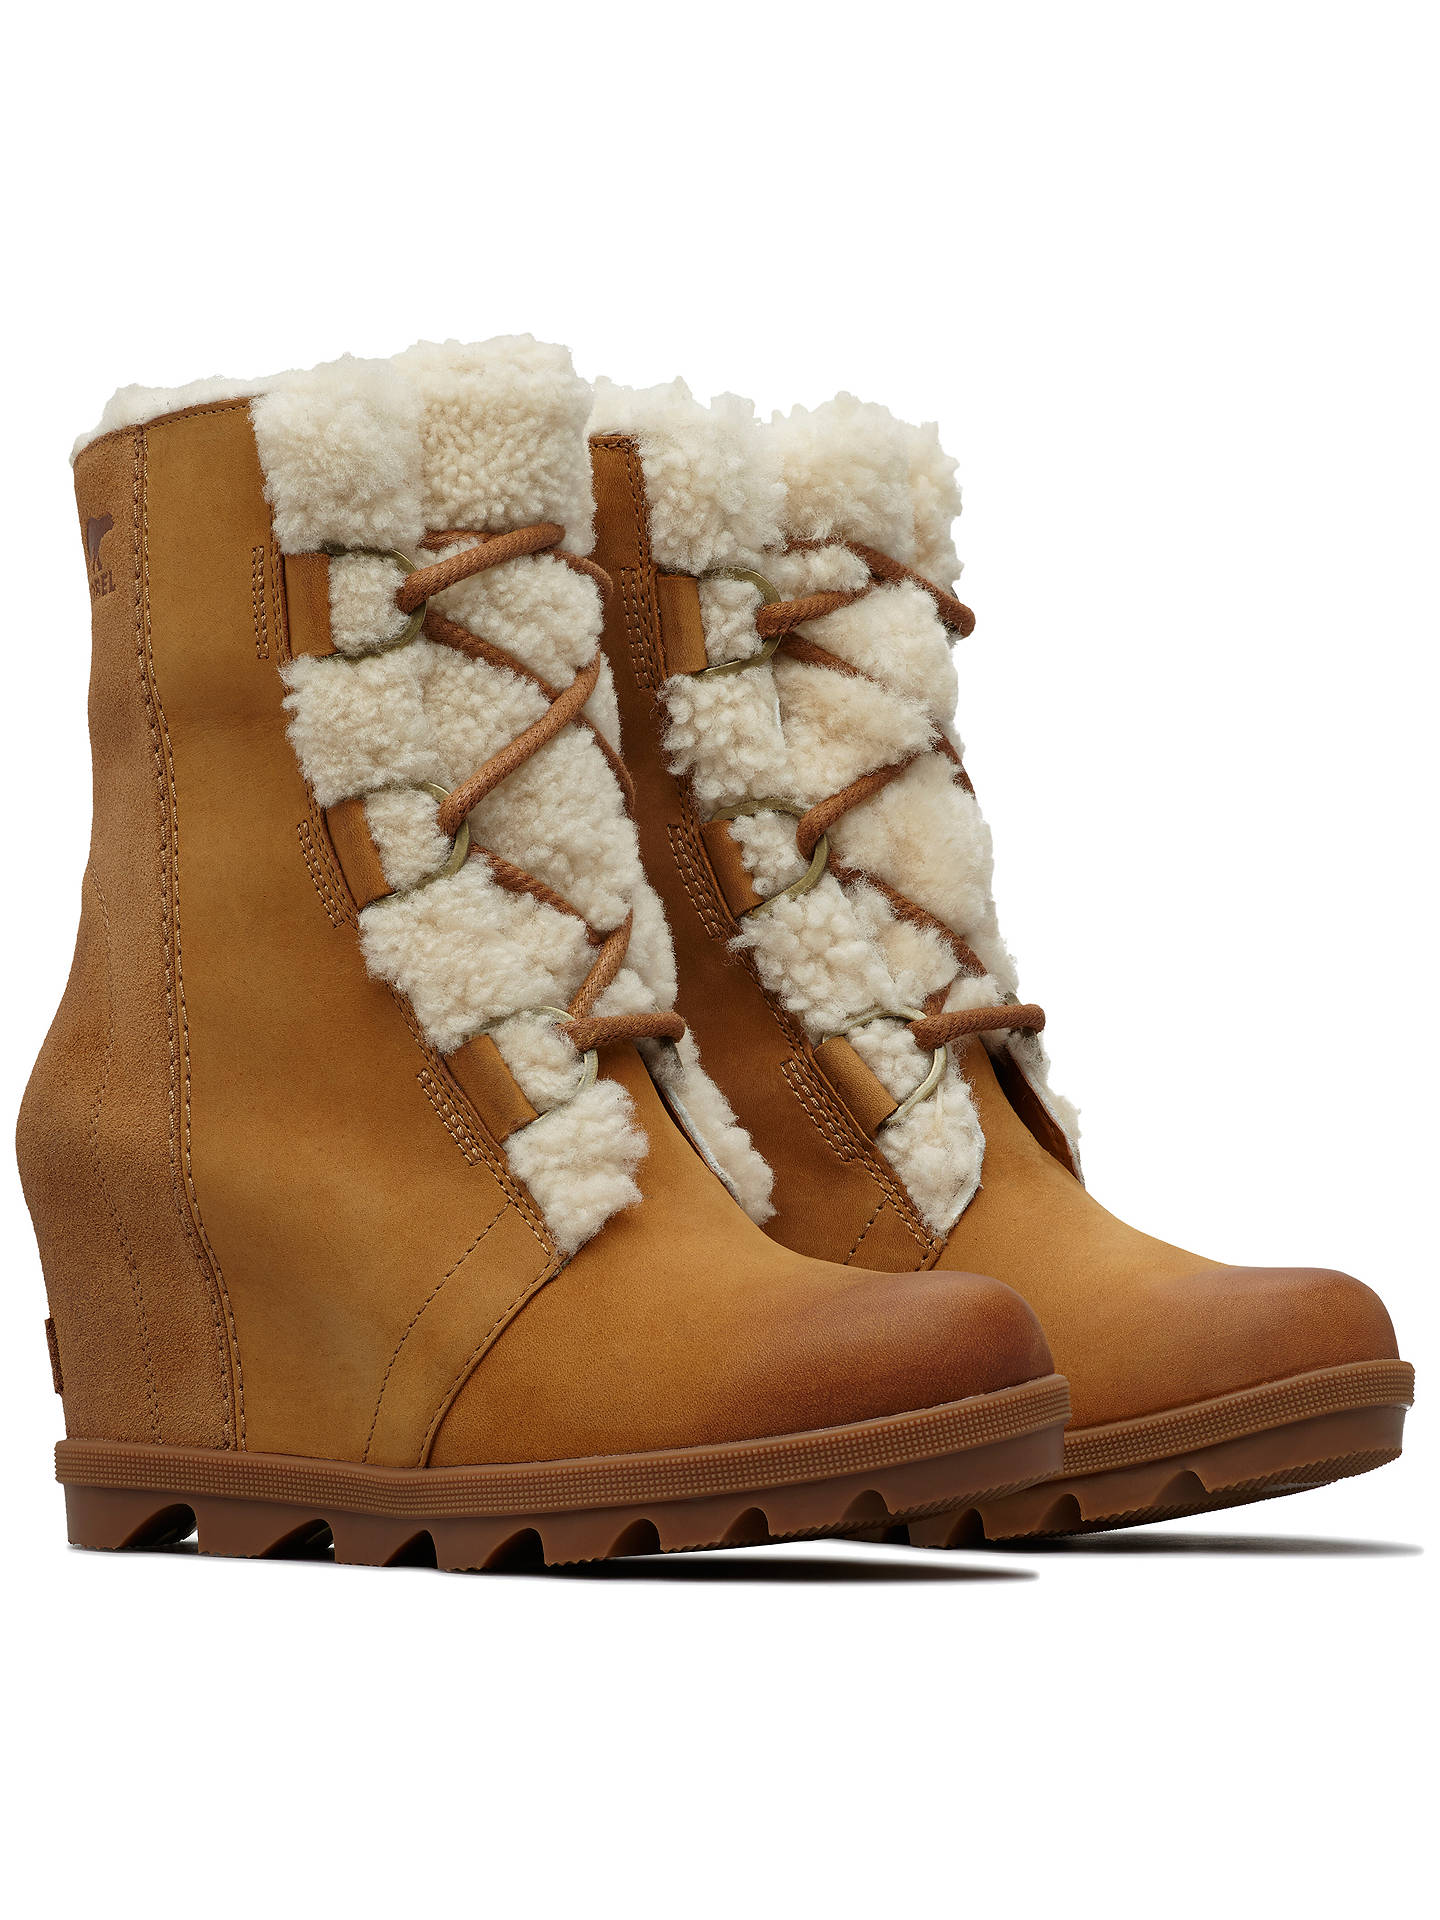 0f2a3f0a809 ... Buy Sorel Joan Of Arctic Wedge Heel Ankle Snow Boots